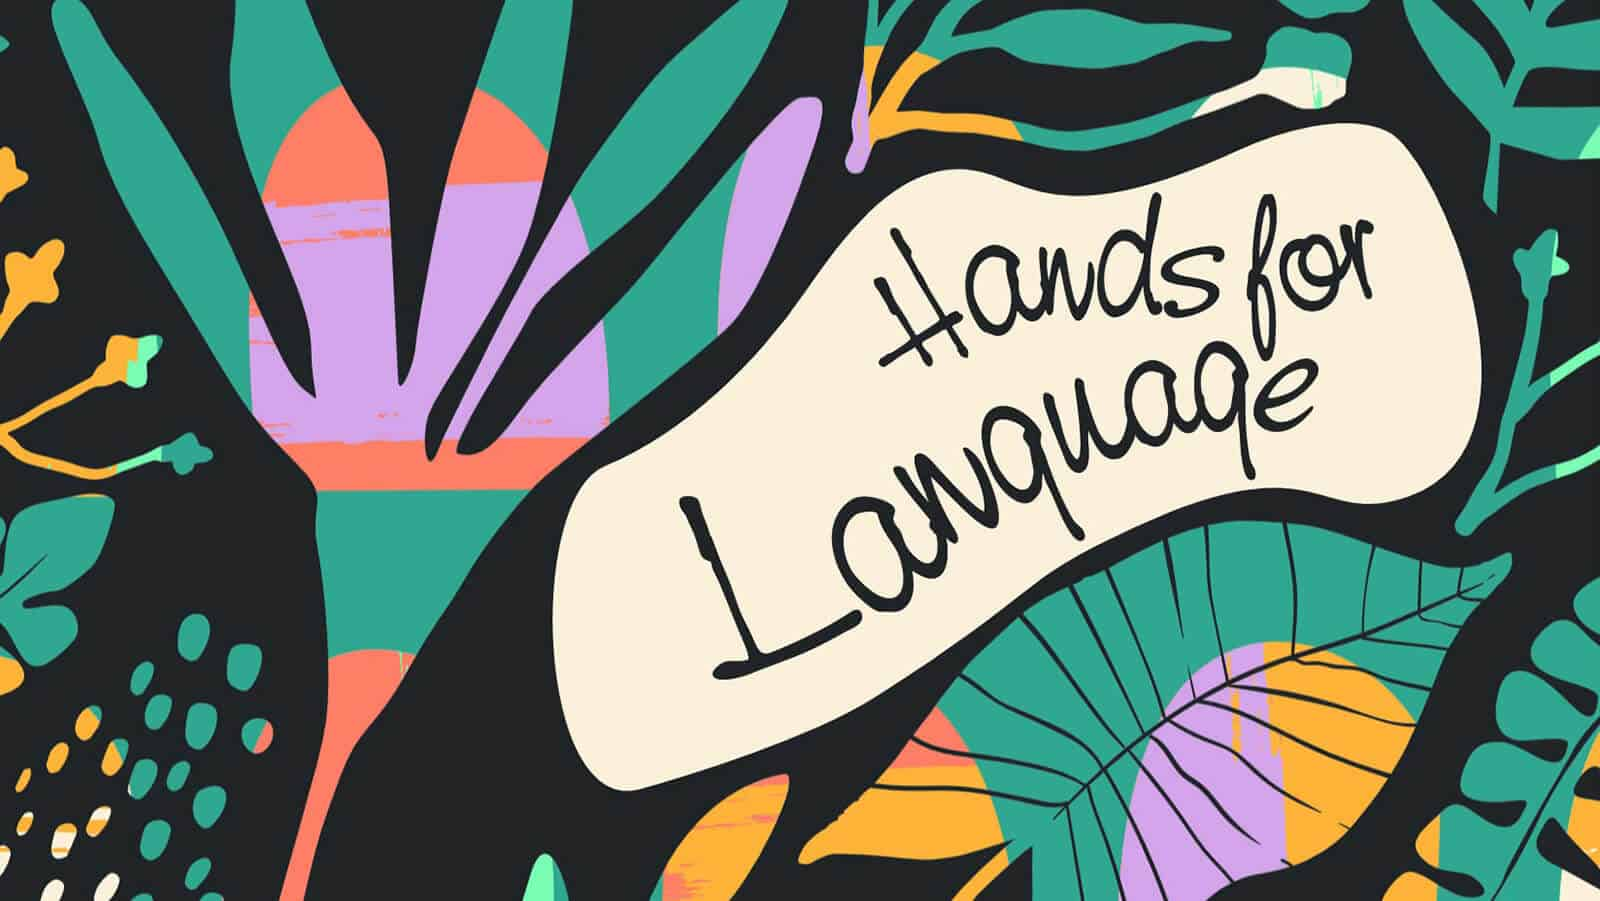 Hands for Language - Book Cover